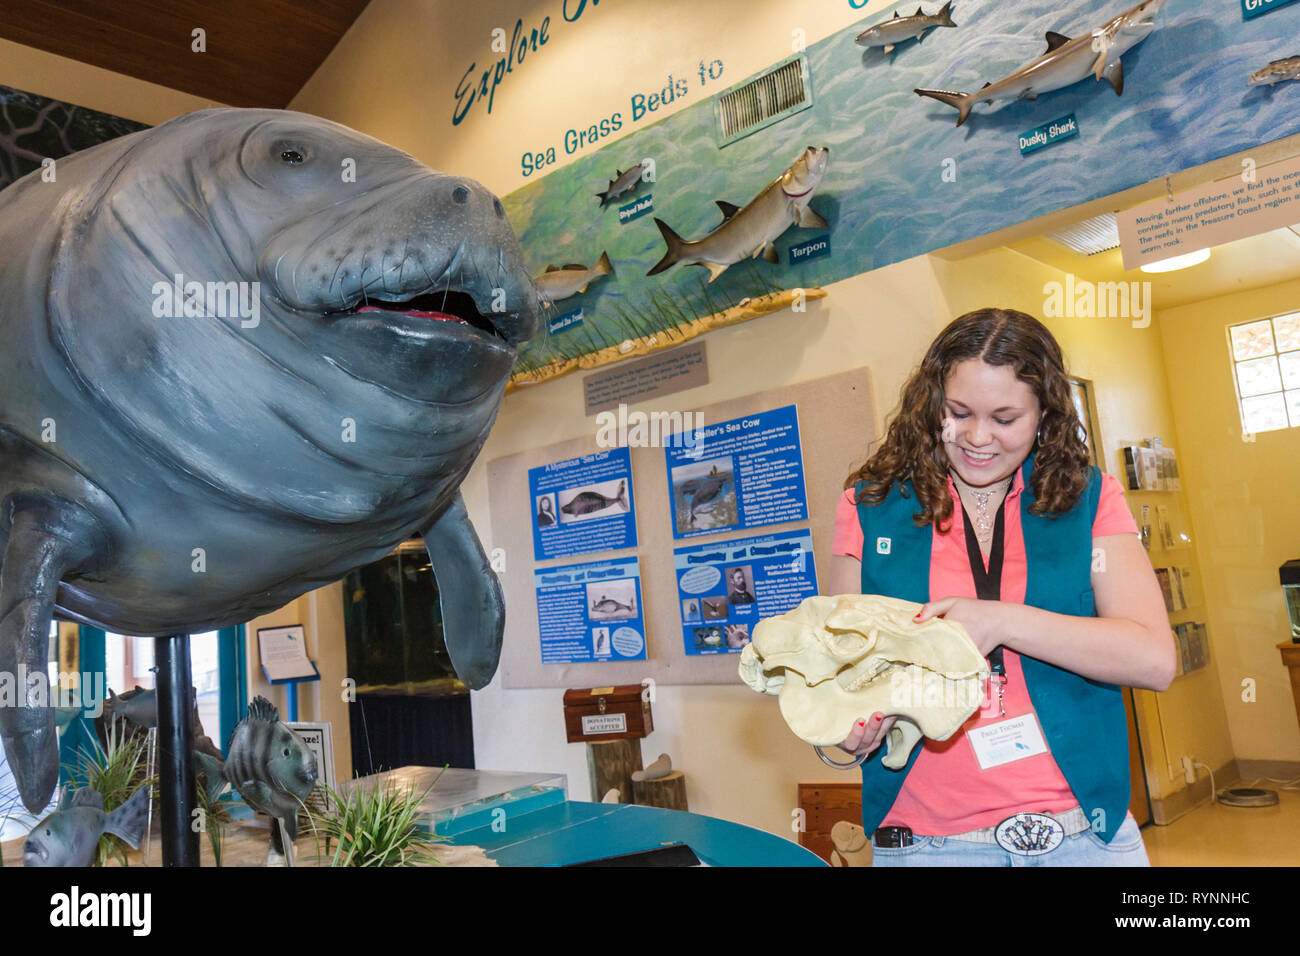 Florida Fort Ft. Pierce Manatee Observation and Education Center wildlife observation sea cow endangered specie girl teen studen - Stock Image